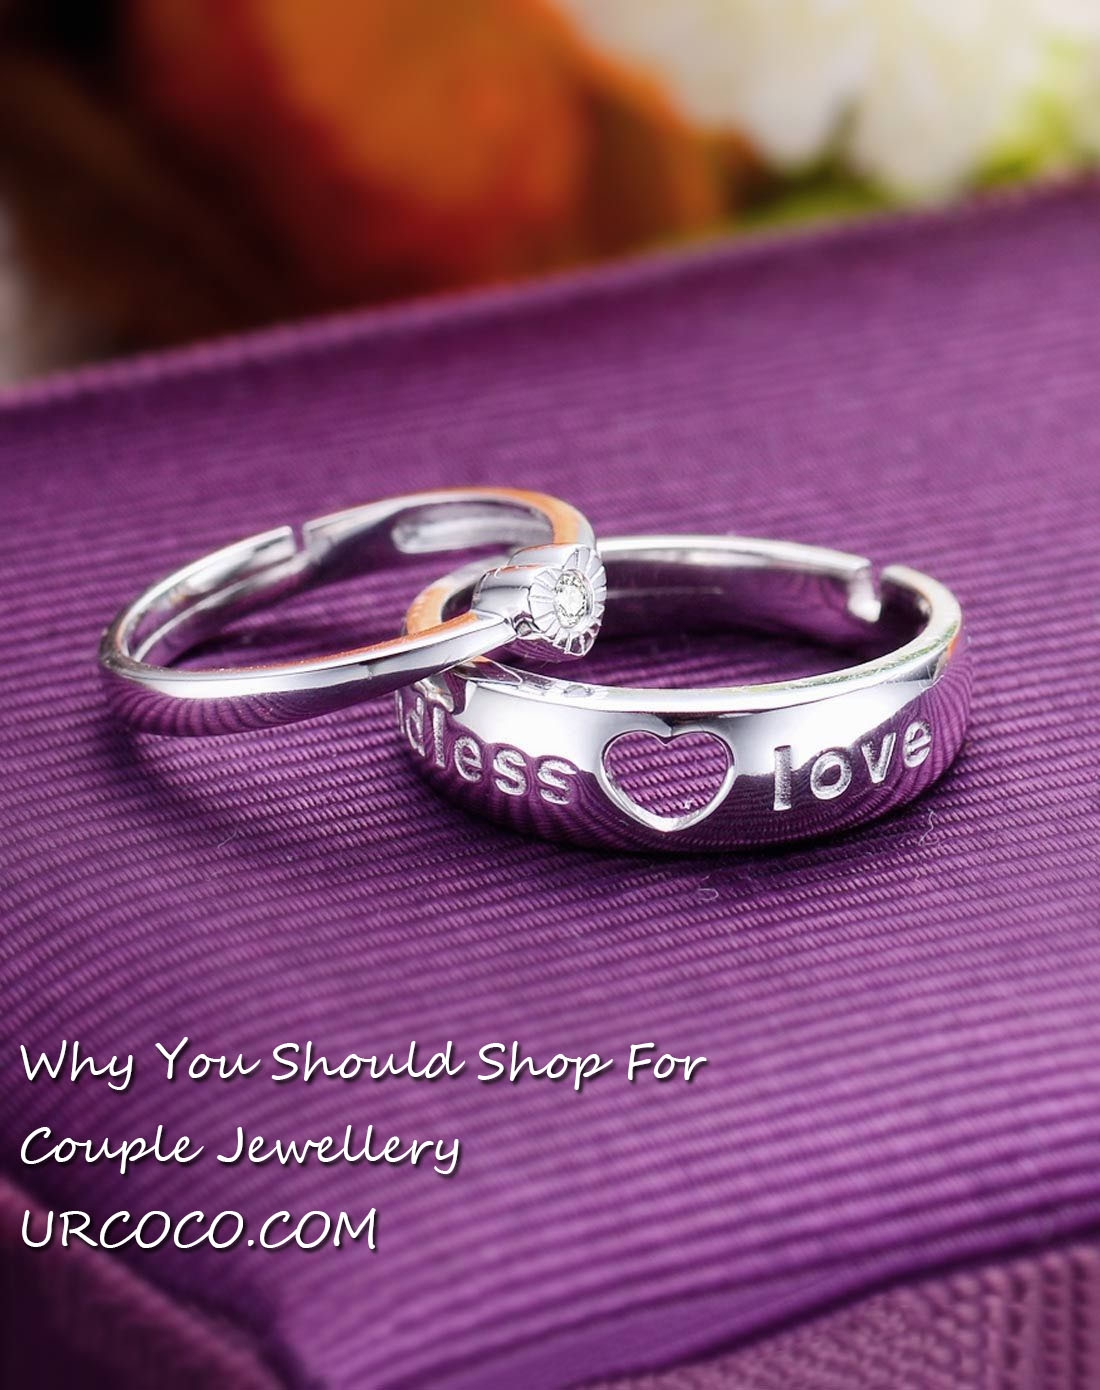 Why You Should Shop For Couple Jewellery